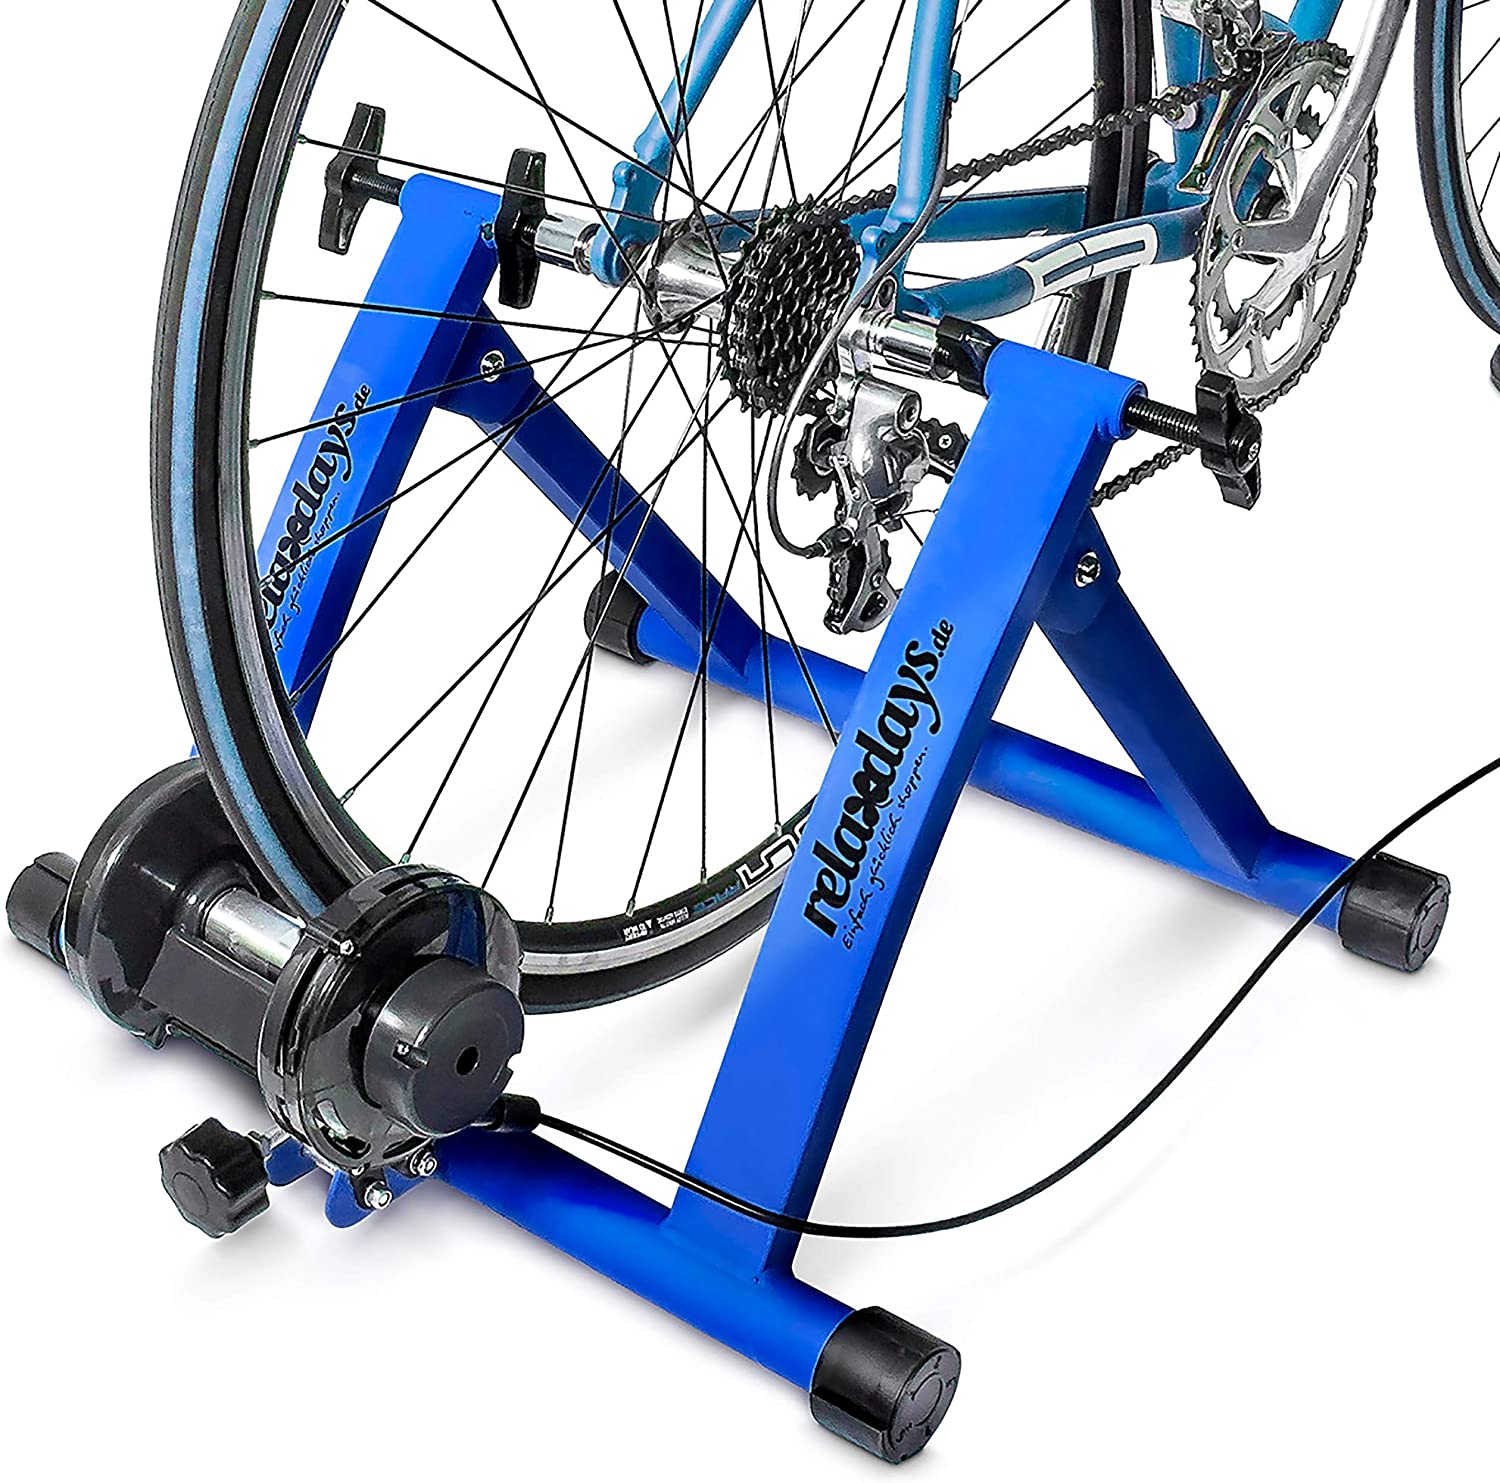 Cardio Workout Relaxdays Indoor Bicycle Resistance Trainer for 26-28 Wheels Indoor Cycling Stand 6 Gears Blue//Green